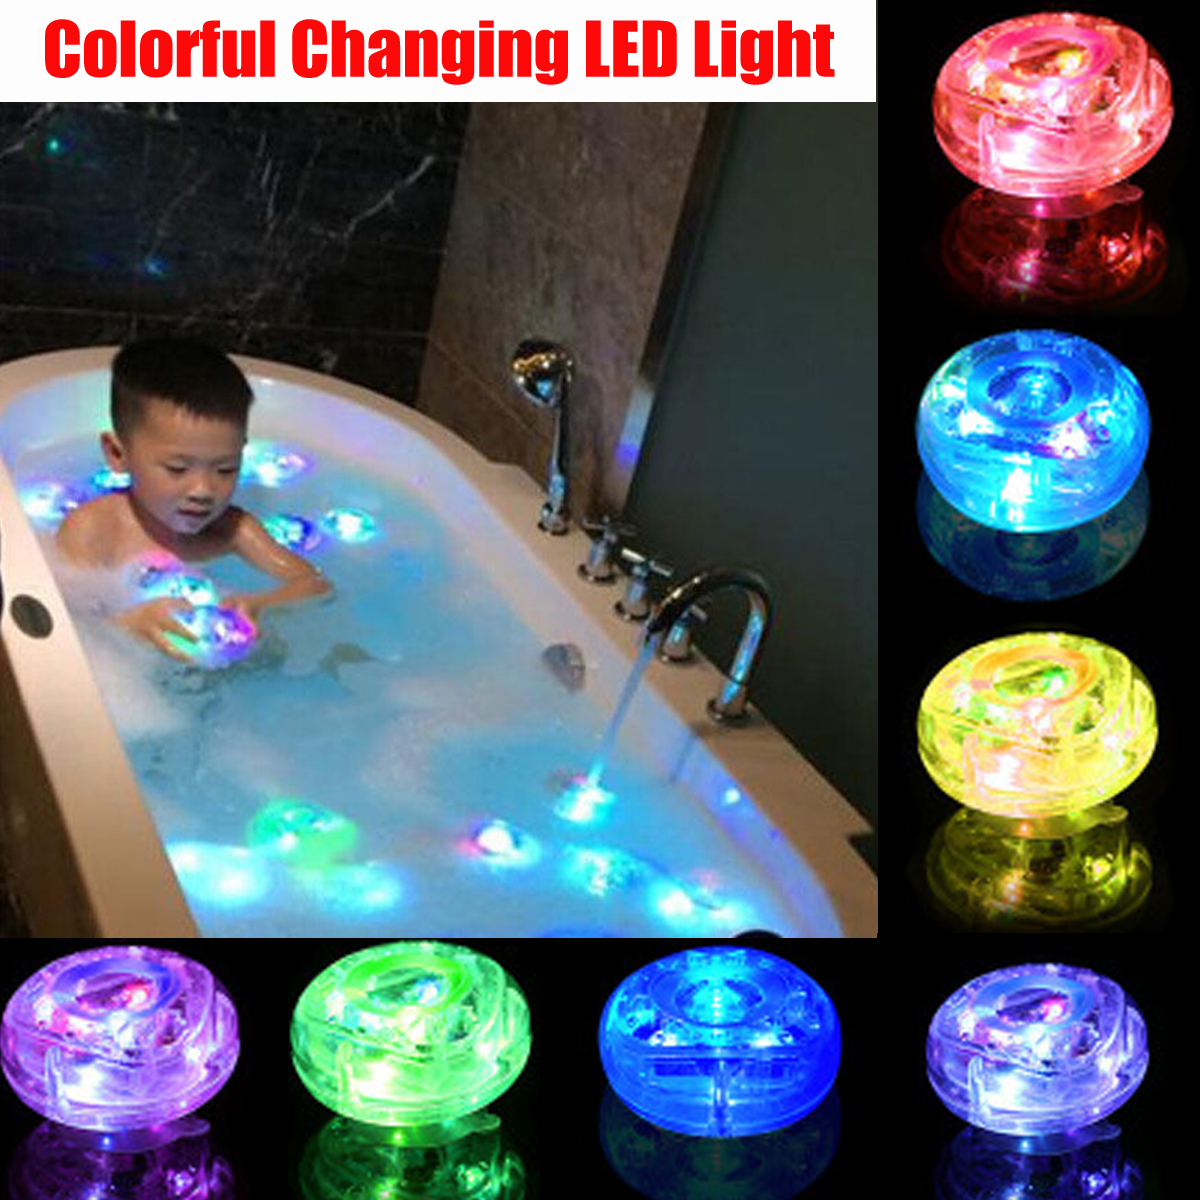 Waterproof Kids Baby Bathroom Shower Time Tub Swimming Pool LED Lamp Bath Light Up Toys Colorful Changing